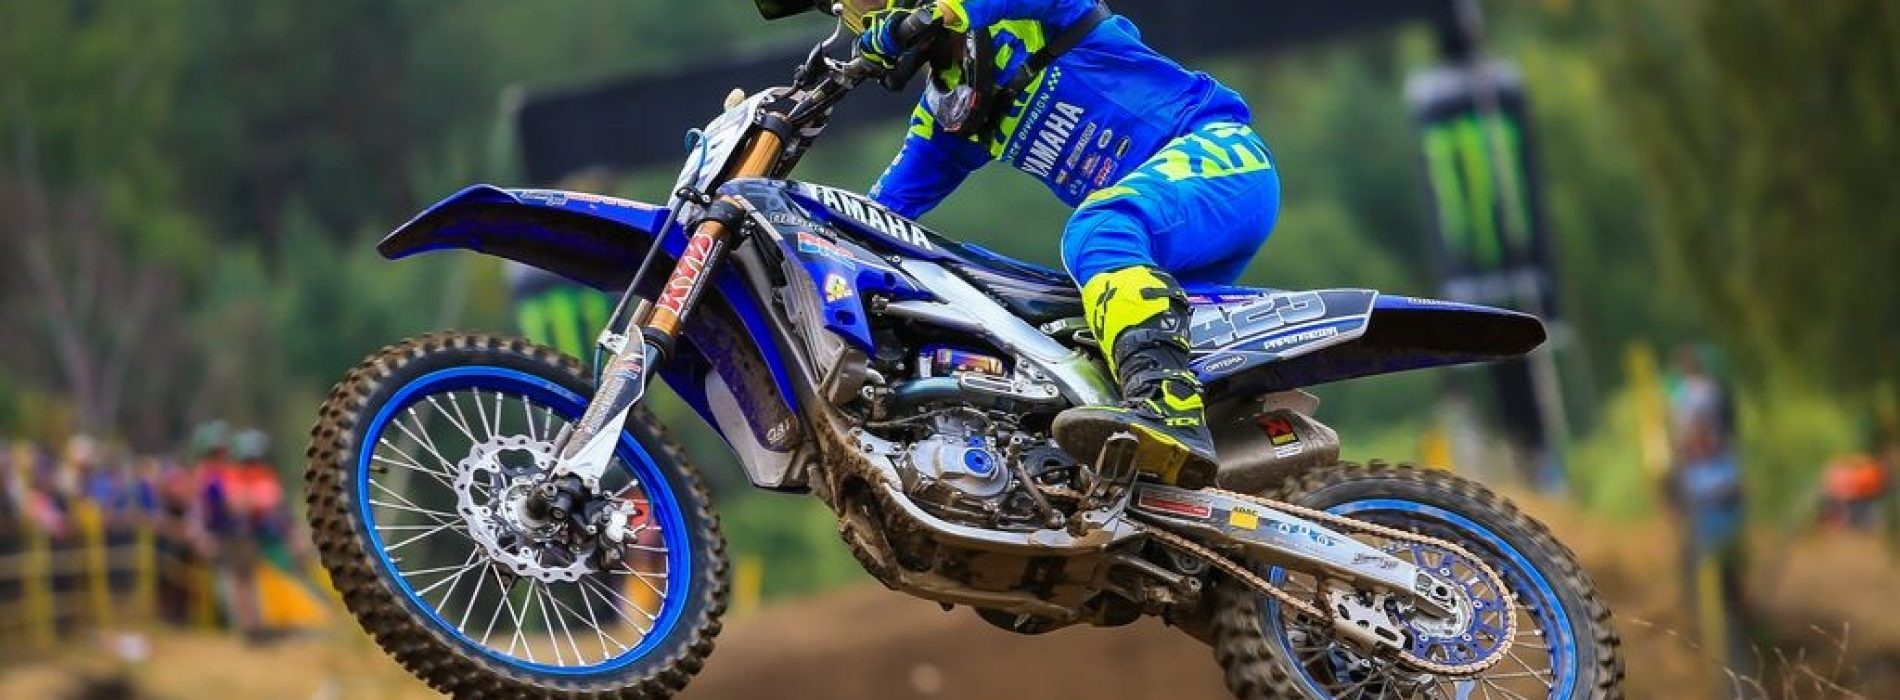 Larissa Papenmeier 2nd WMX Round 3- Overall closing gap to 2nd